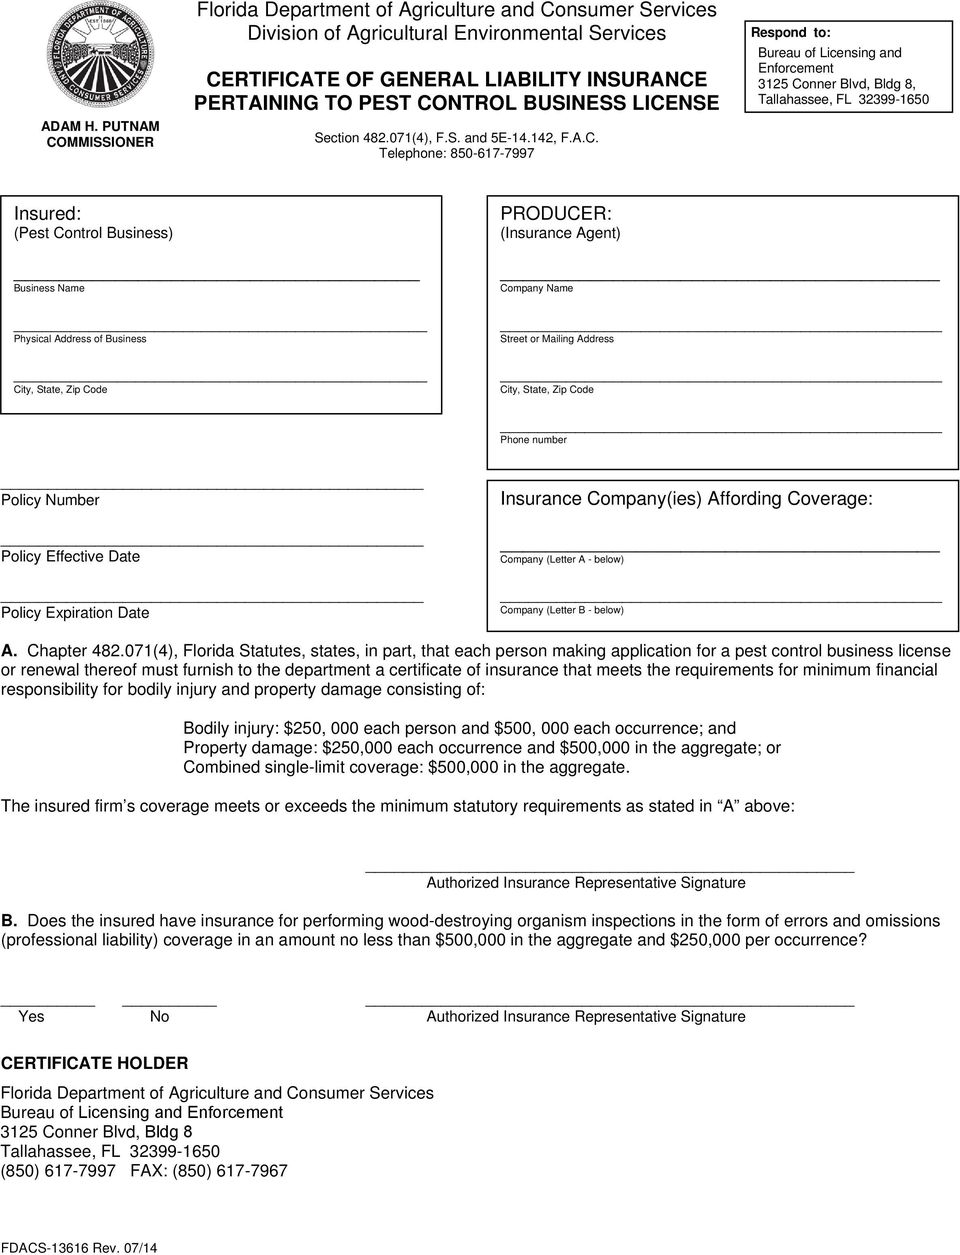 PEST CONTROL BUSINESS LICENSE APPLICATION INSTRUCTION SHEET - PDF